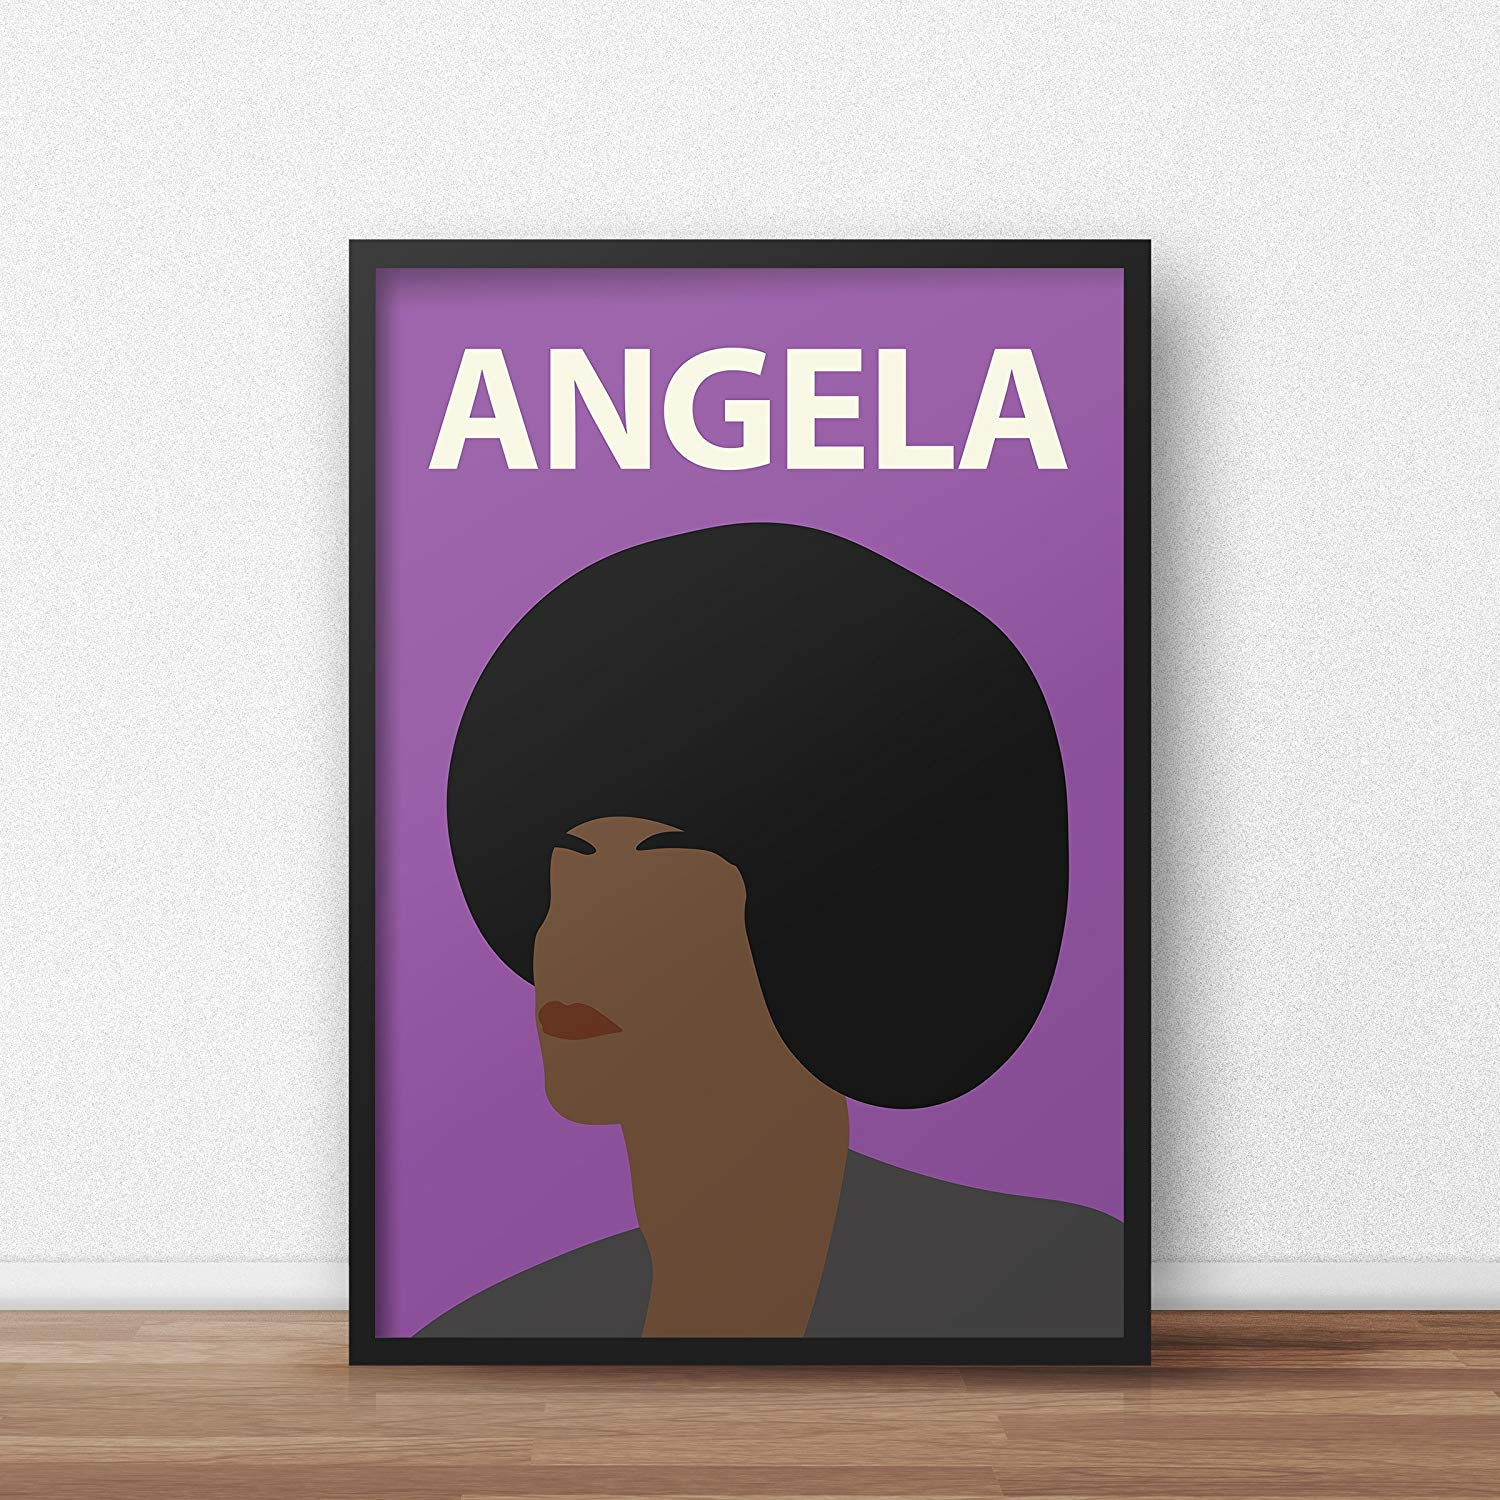 Angela Davis Poster Print // Wall Art - Portrait - Retro - Colourful - Minimalist - Civil Rights - Black Lives Matter - Inspirational - Black Panther